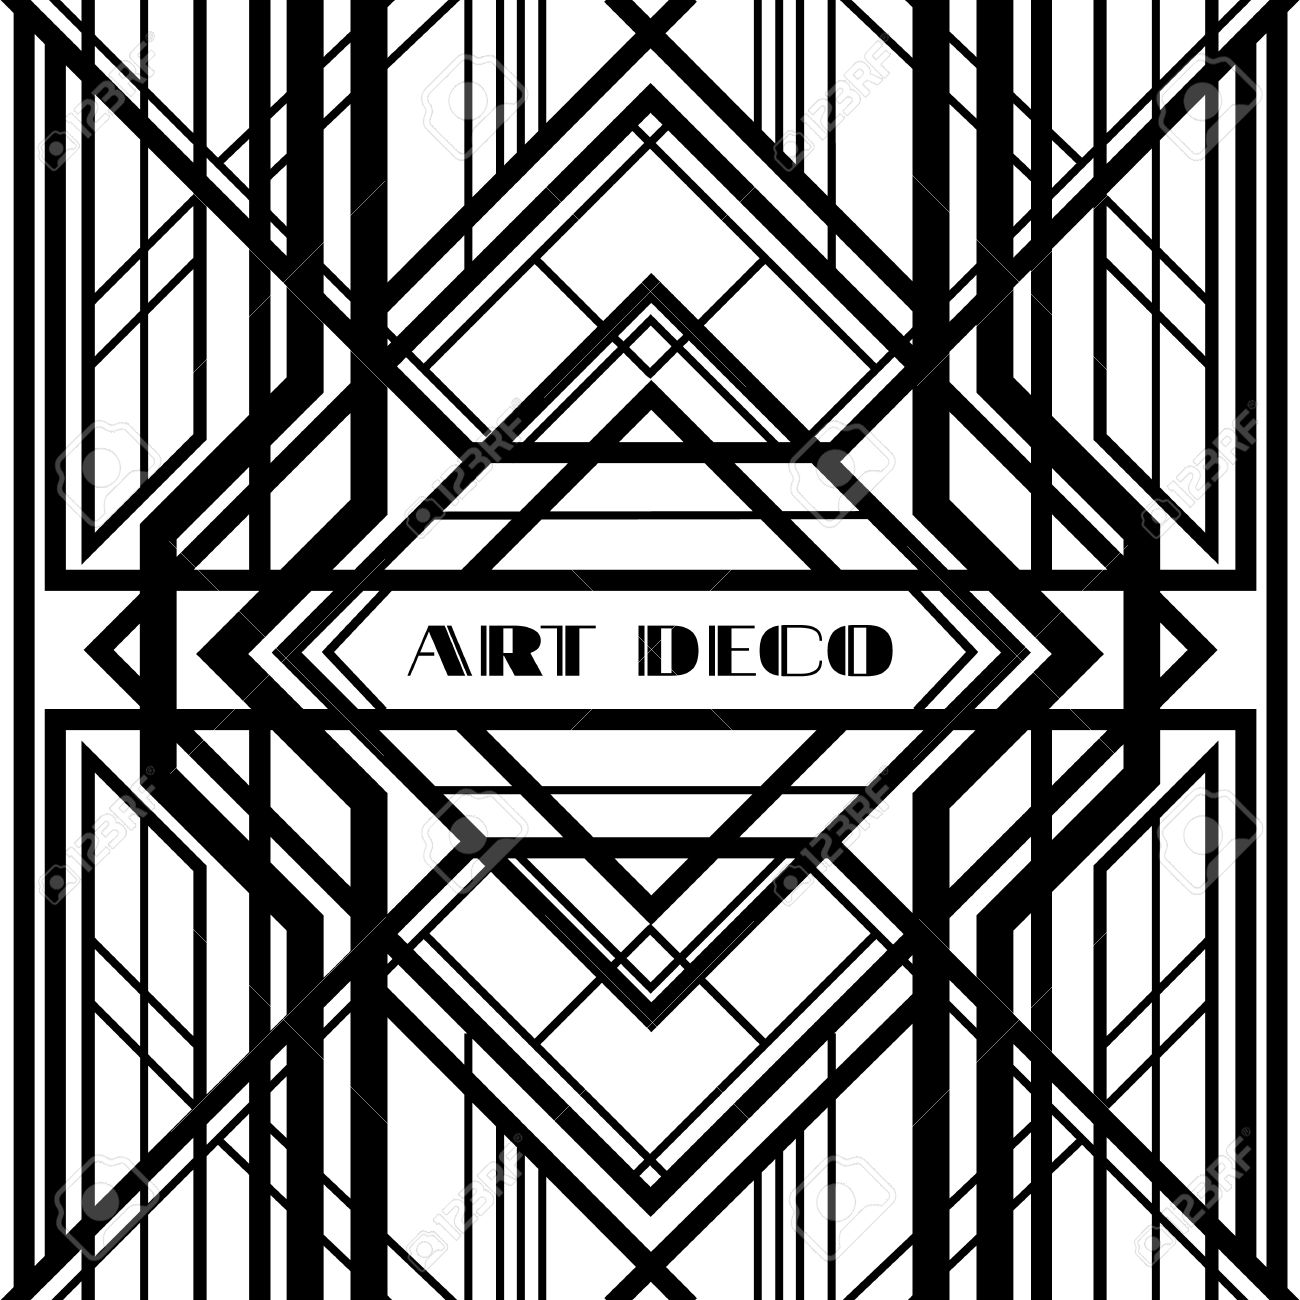 art deco grille, metallic abstract, geometric pattern in the art deco style - 23545267